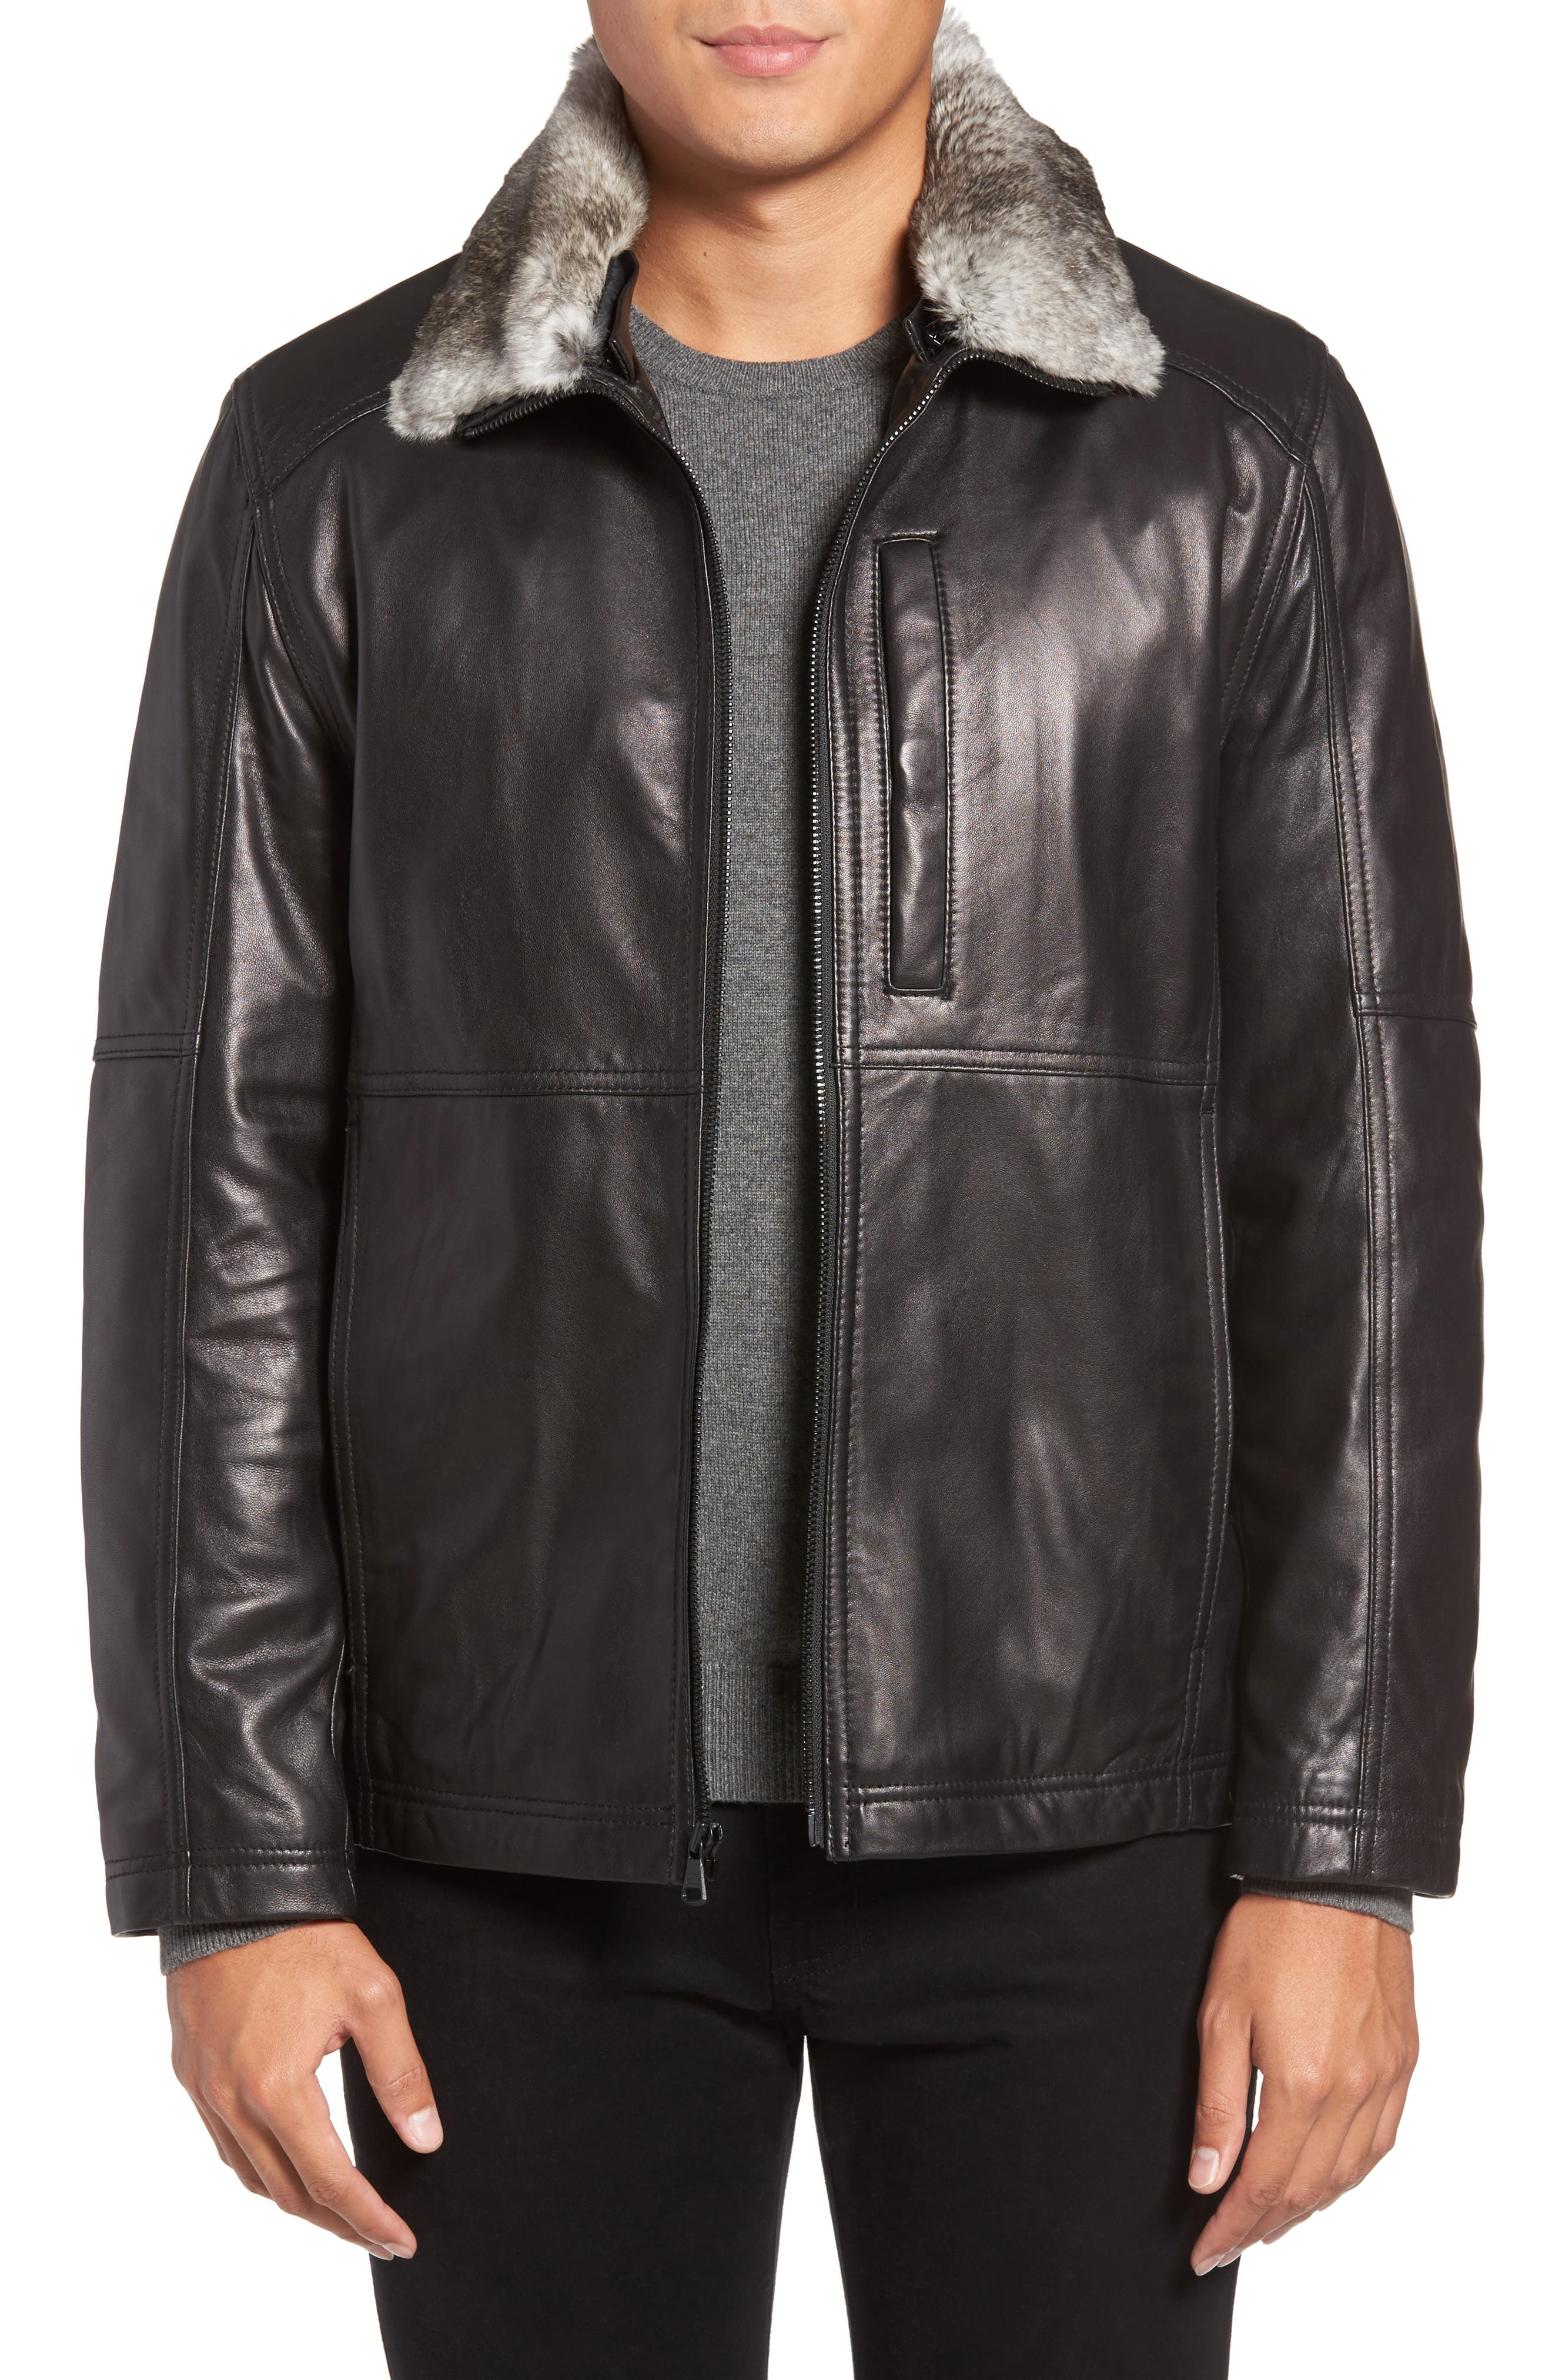 Down filled leather coats